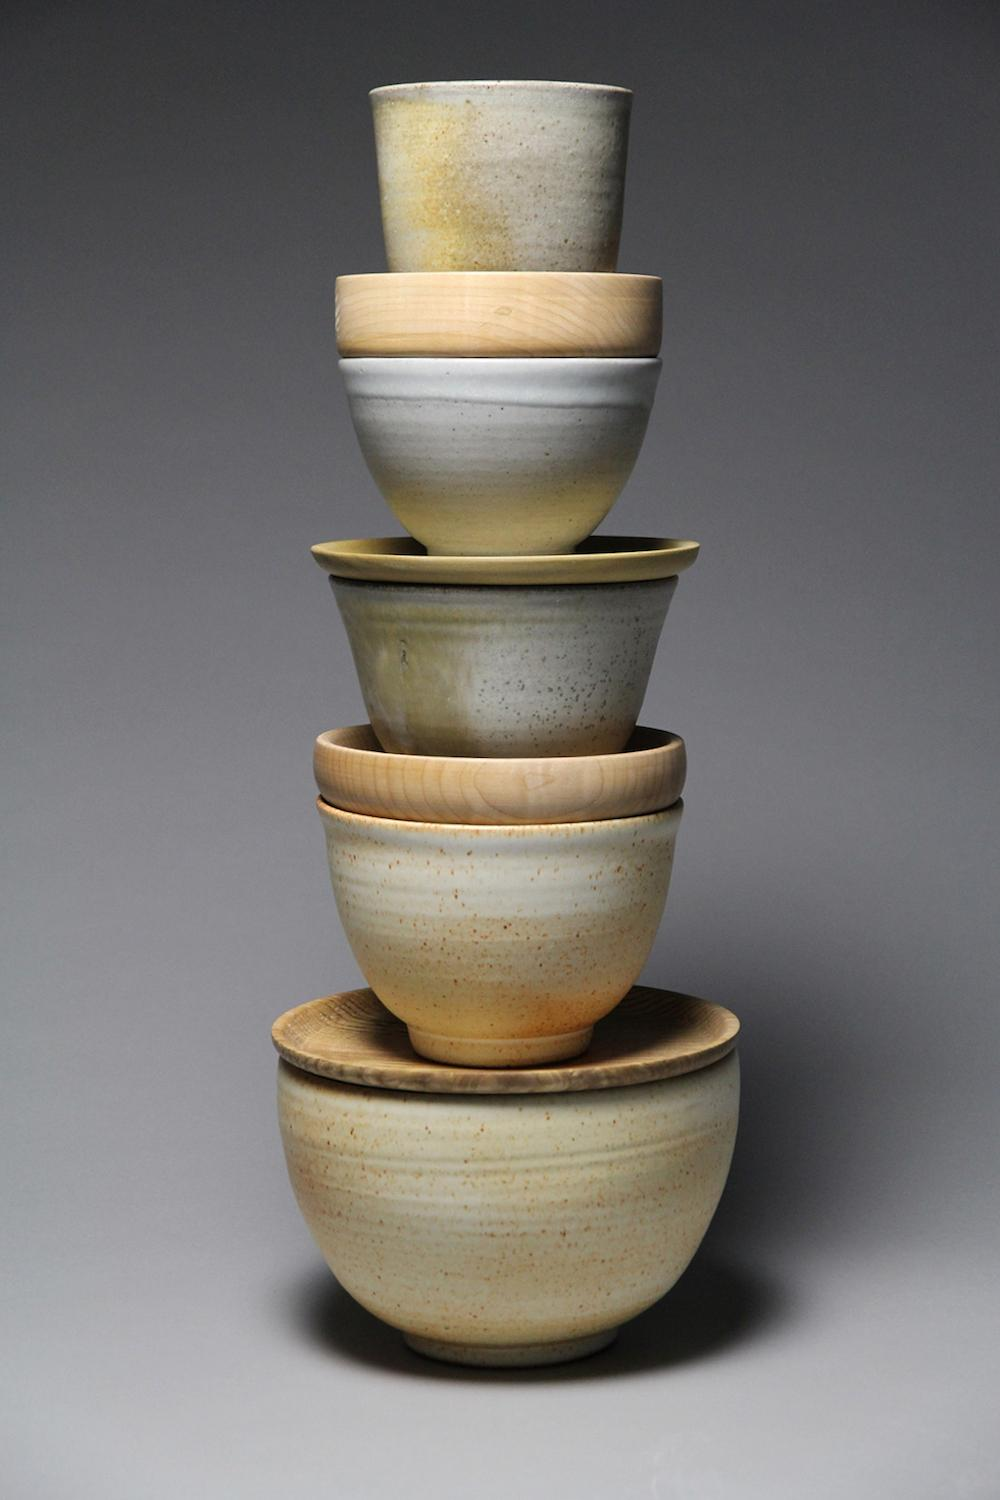 Vessels by Ji In Lee